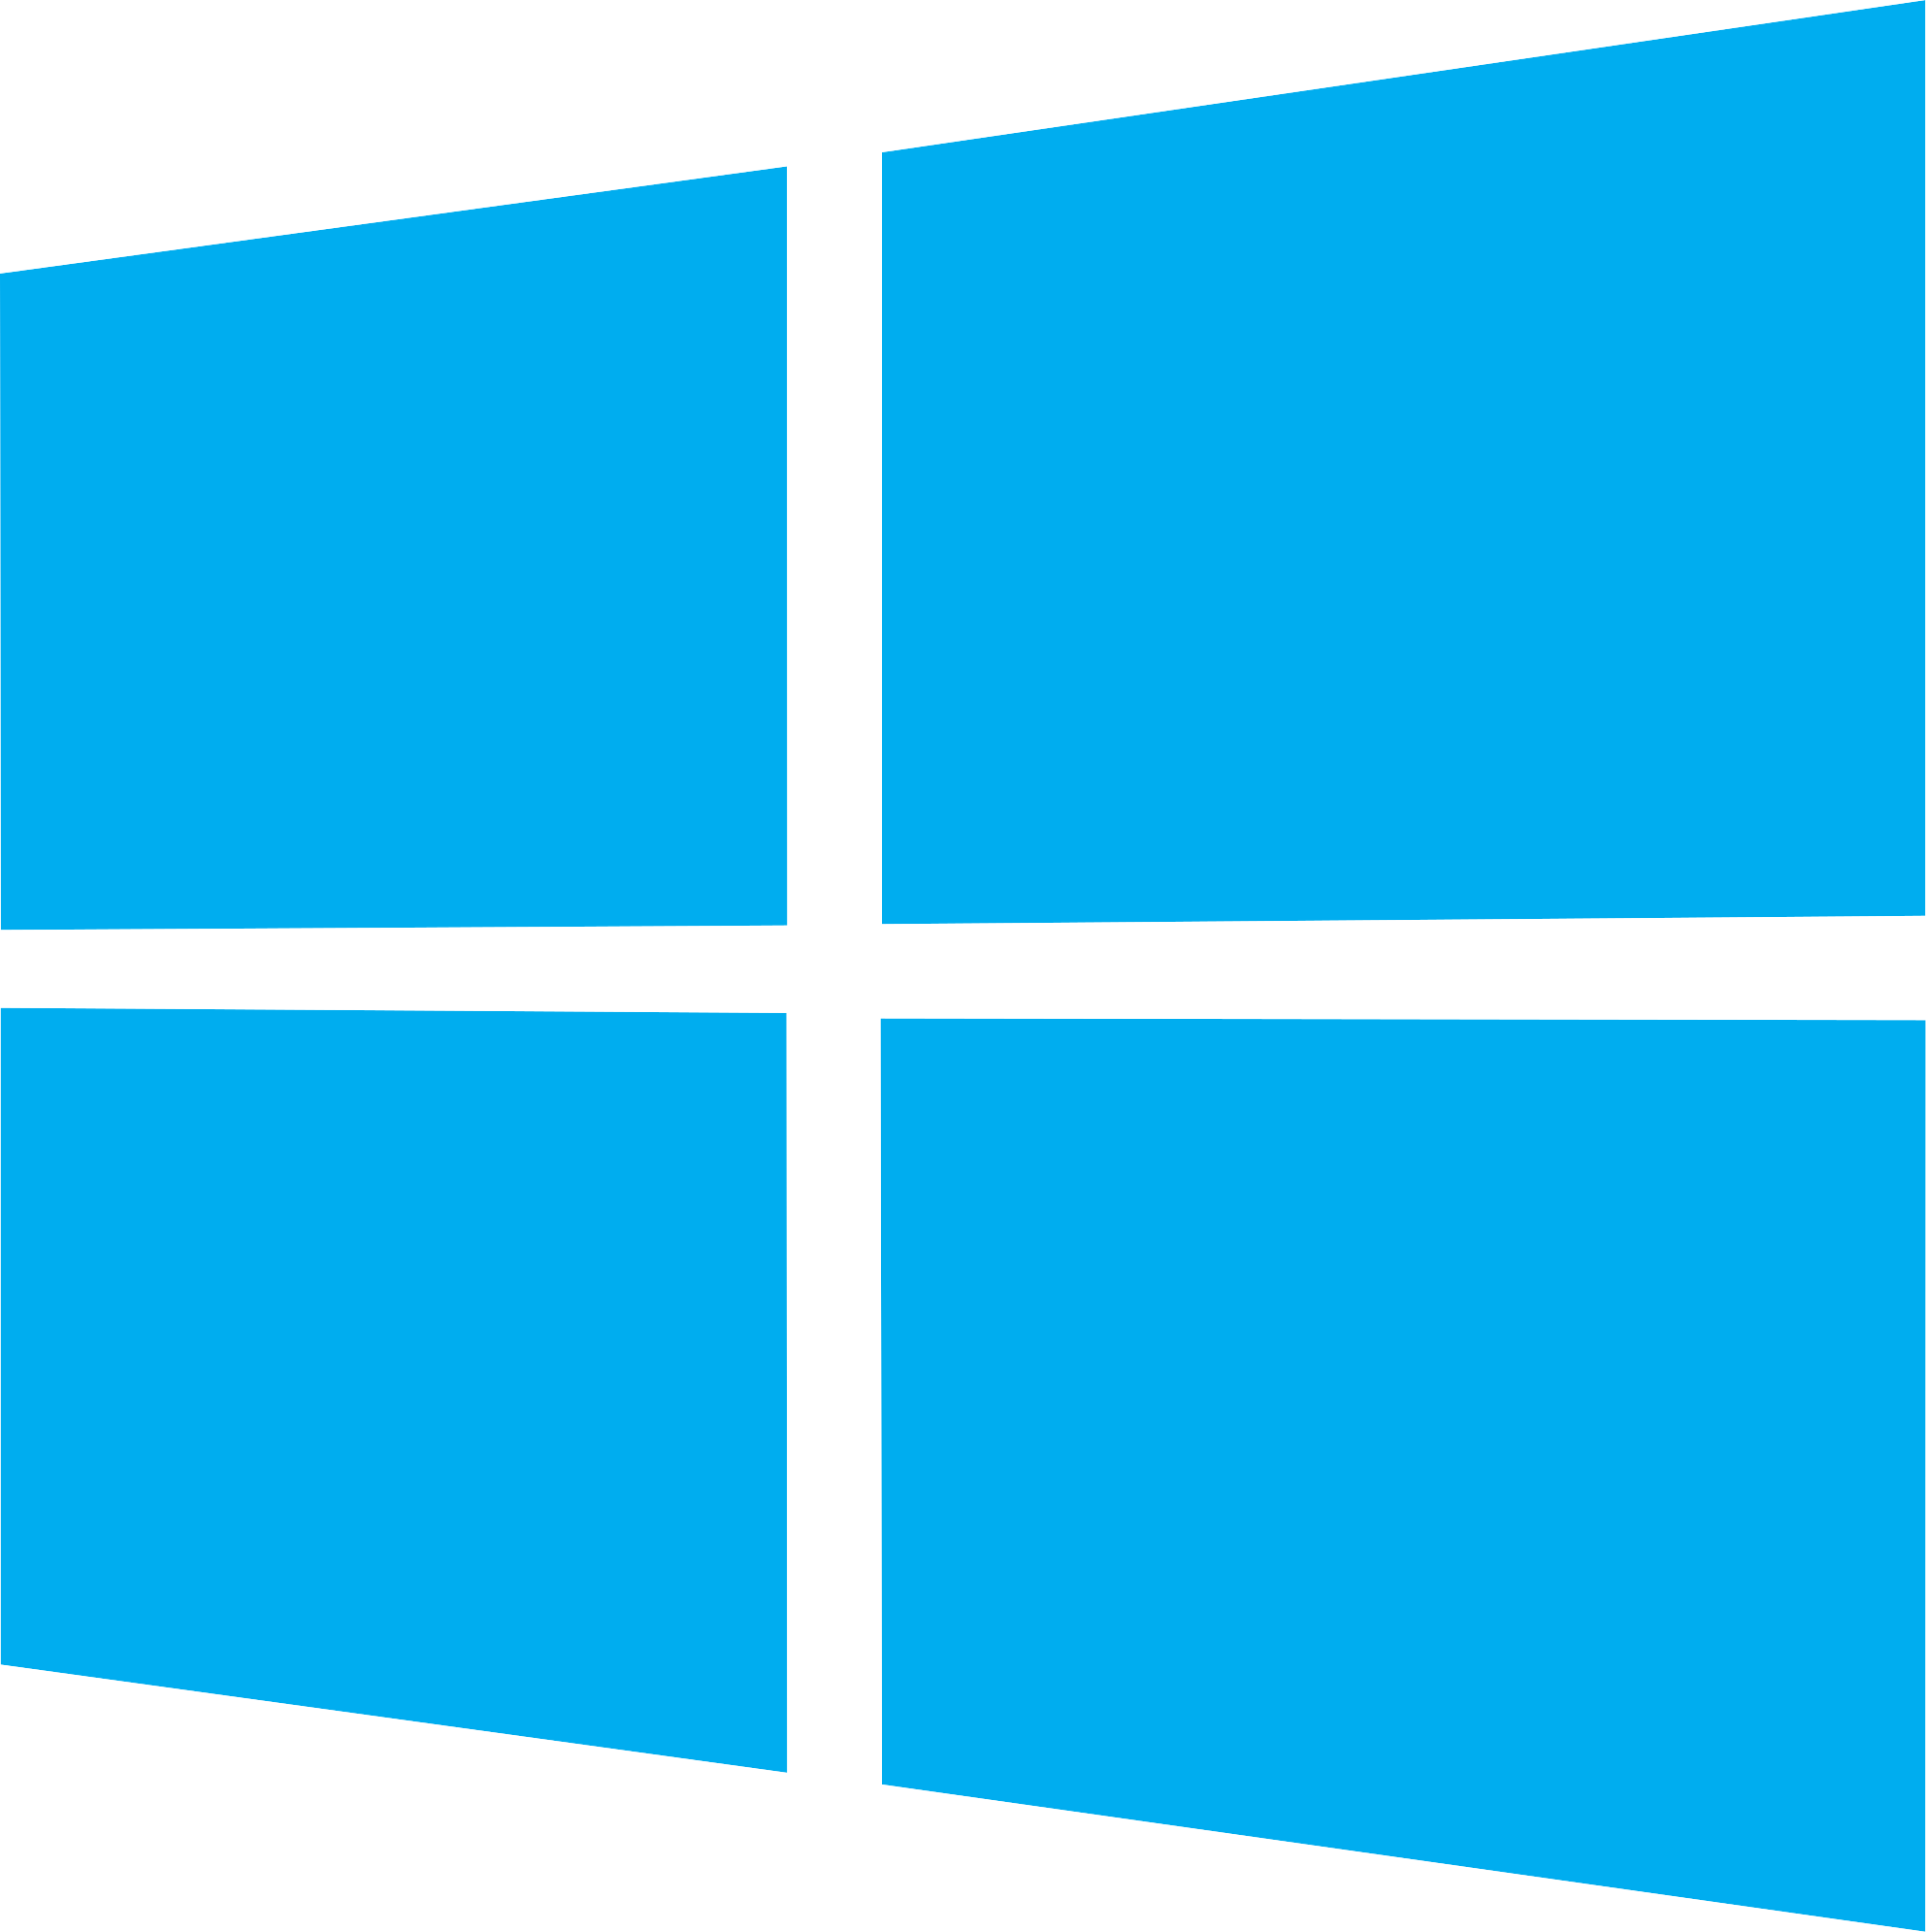 Windows Serwer 16